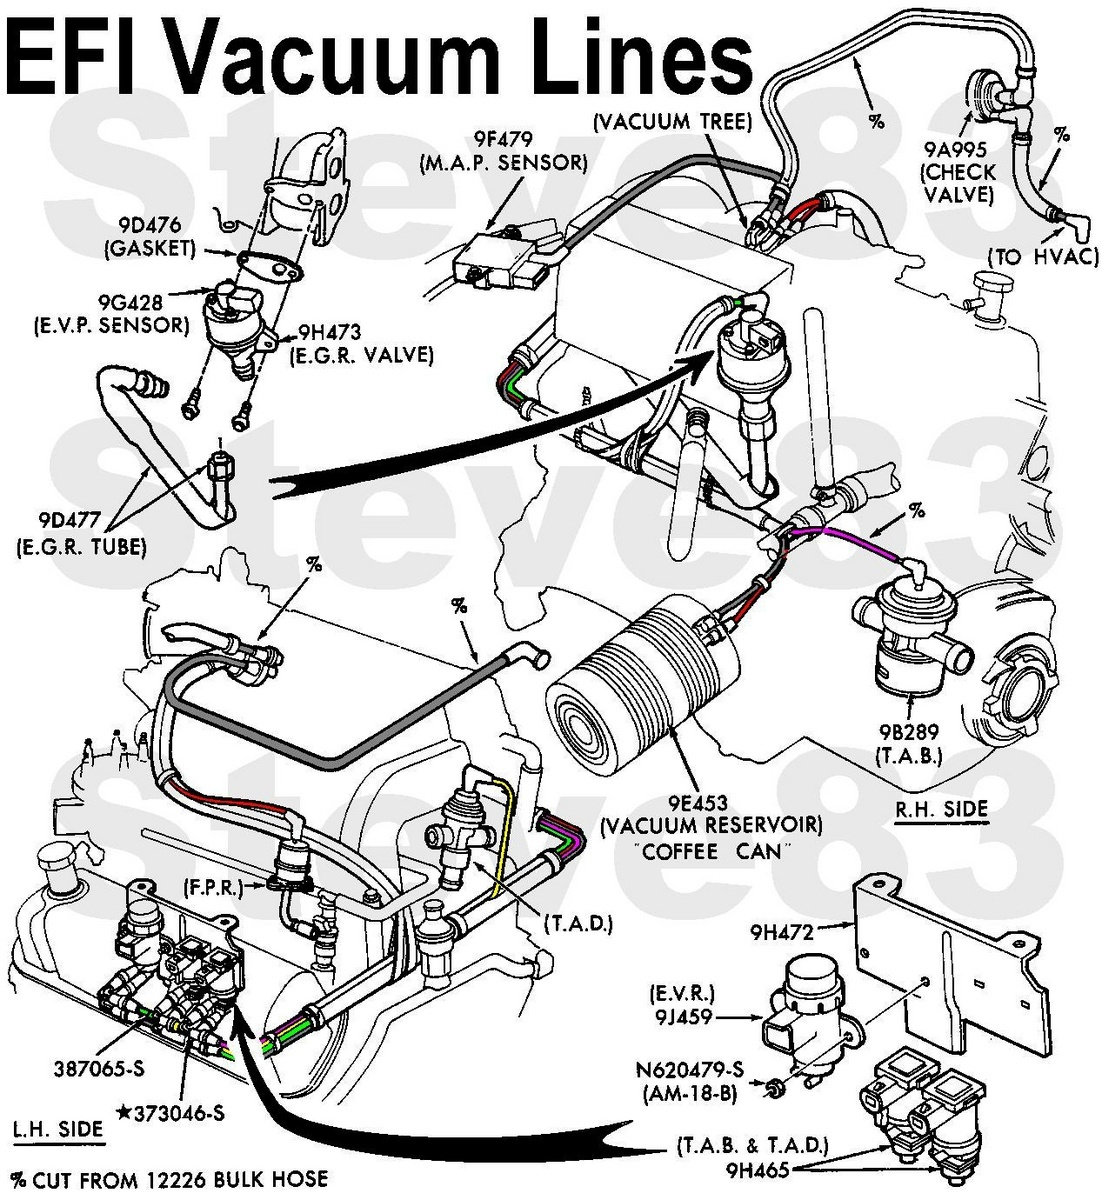 Ford 5 8l Engine Diagram Guide And Troubleshooting Of Wiring 1995 E150 Todays Rh 8 6 9 1813weddingbarn Com 58l E 150